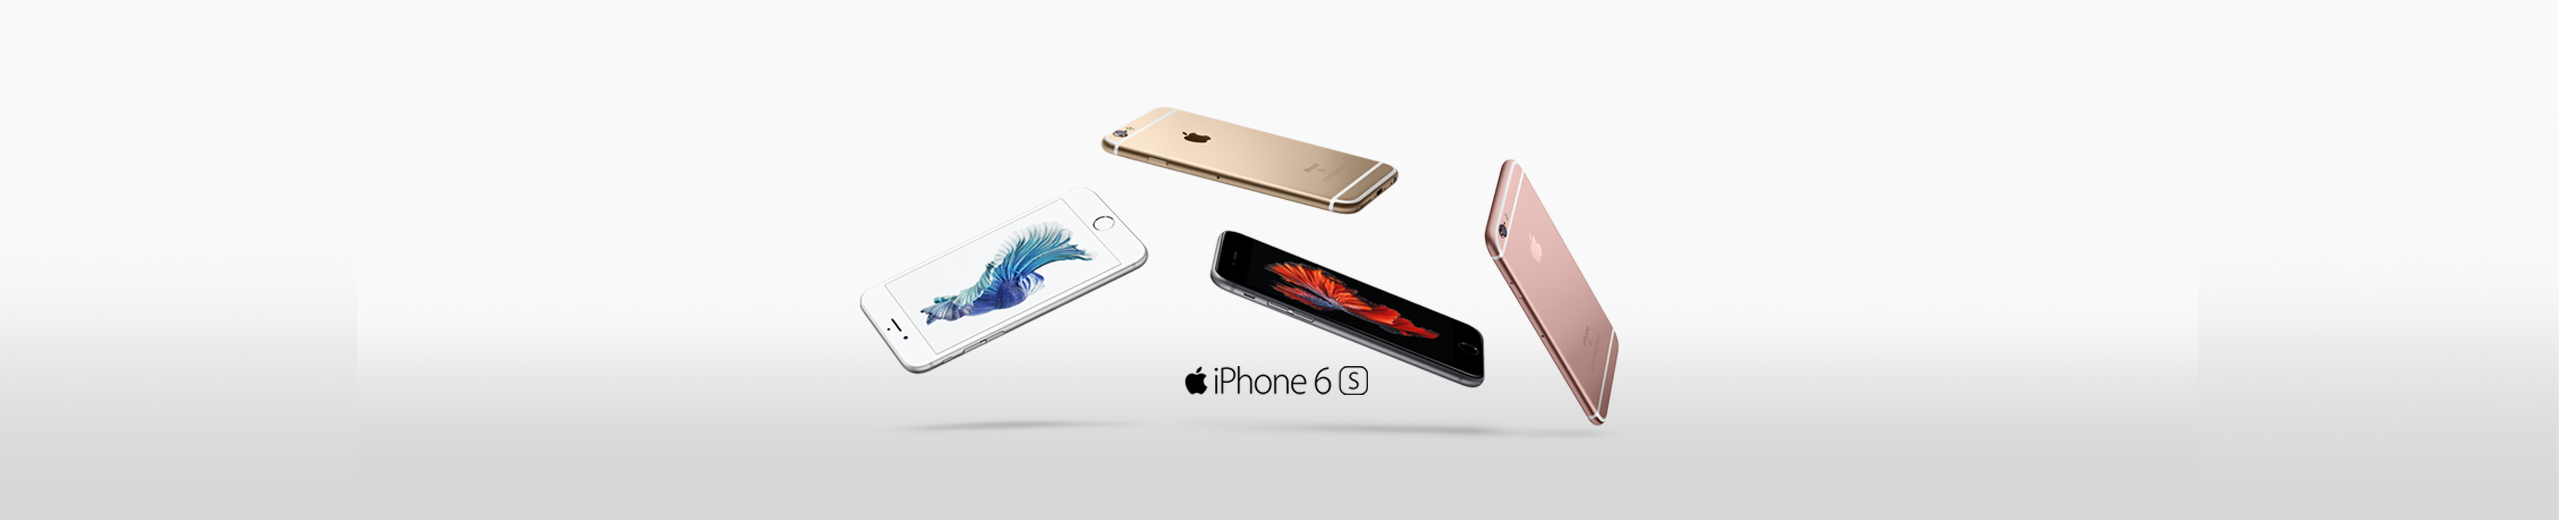 iPhone 6s Businness Banner